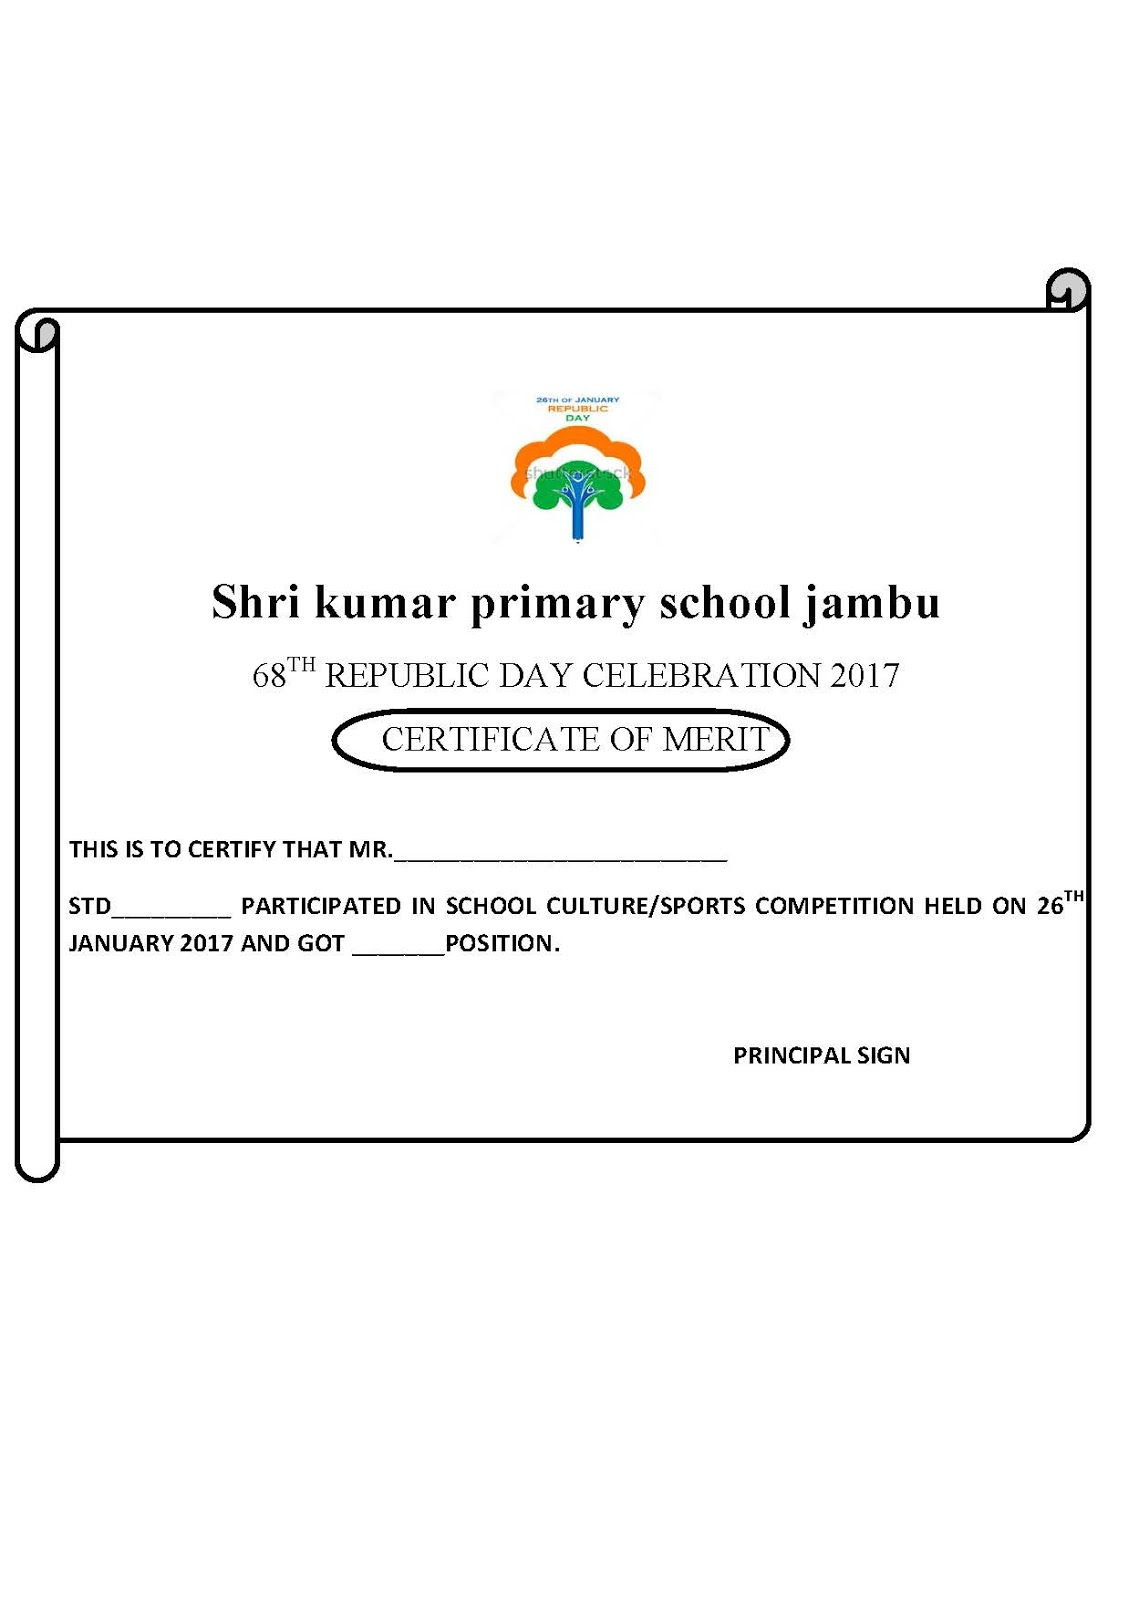 Sample of republic day celebration certificate harshadlk sample of republic day celebration certificate yelopaper Choice Image